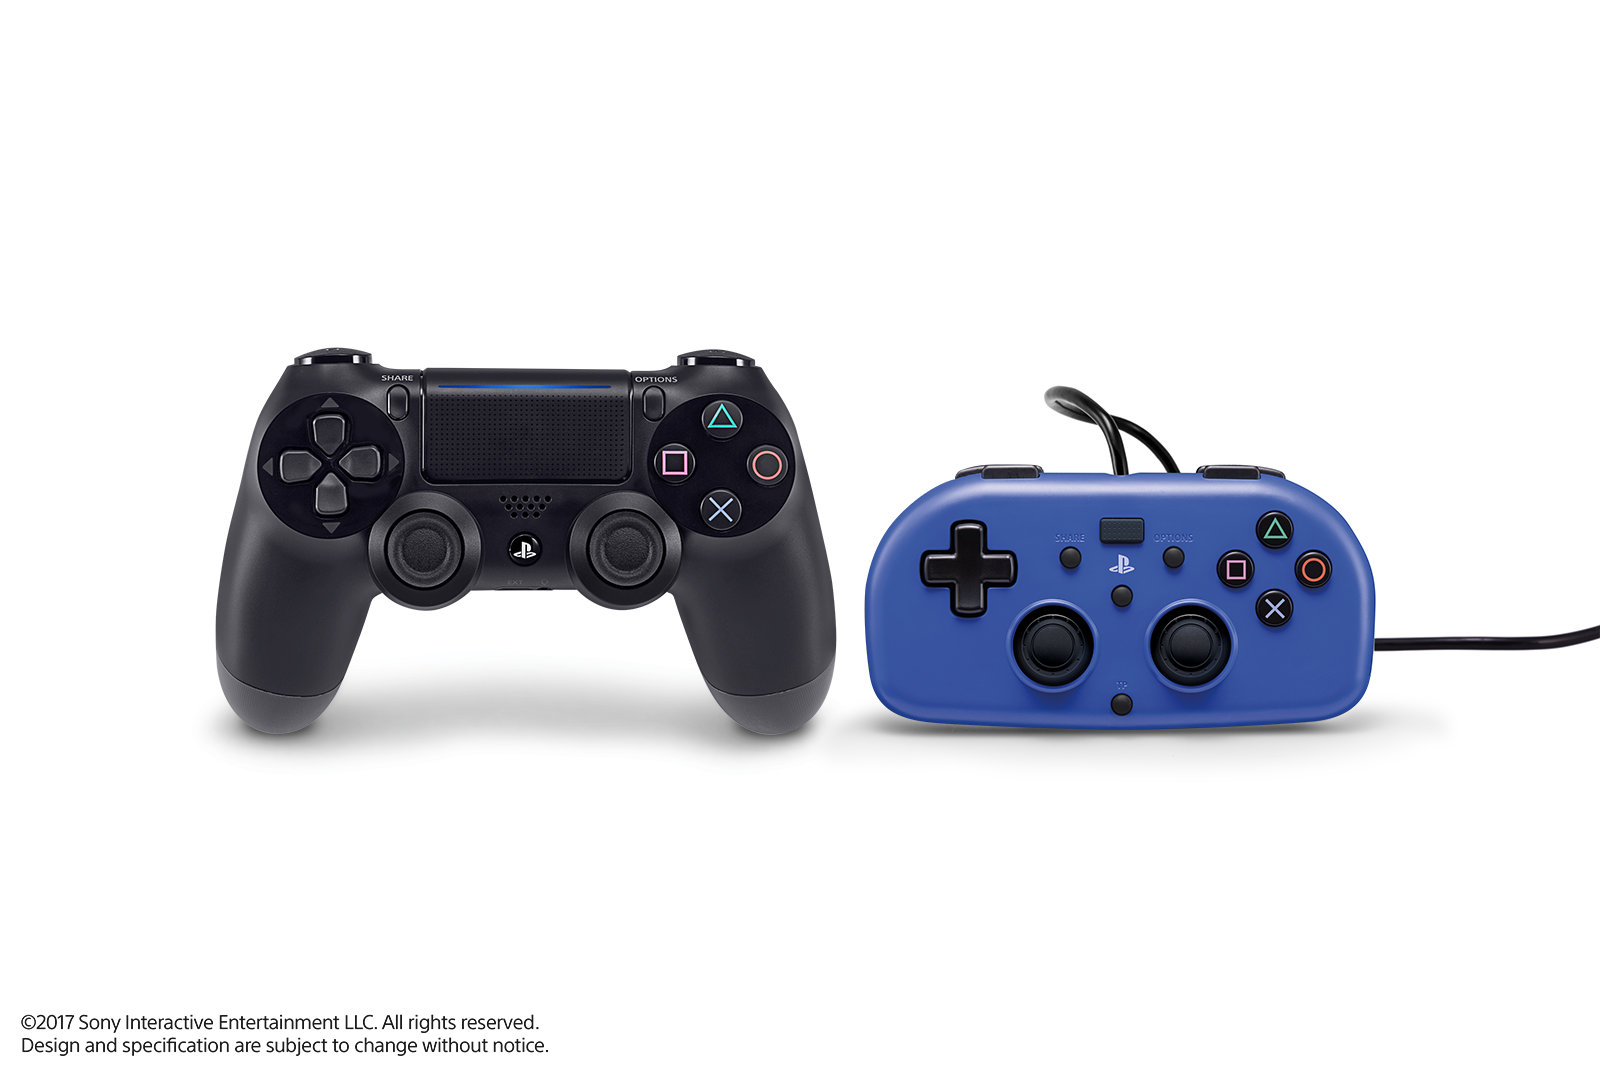 Dualshock 4 and Mini Wired Gamepad